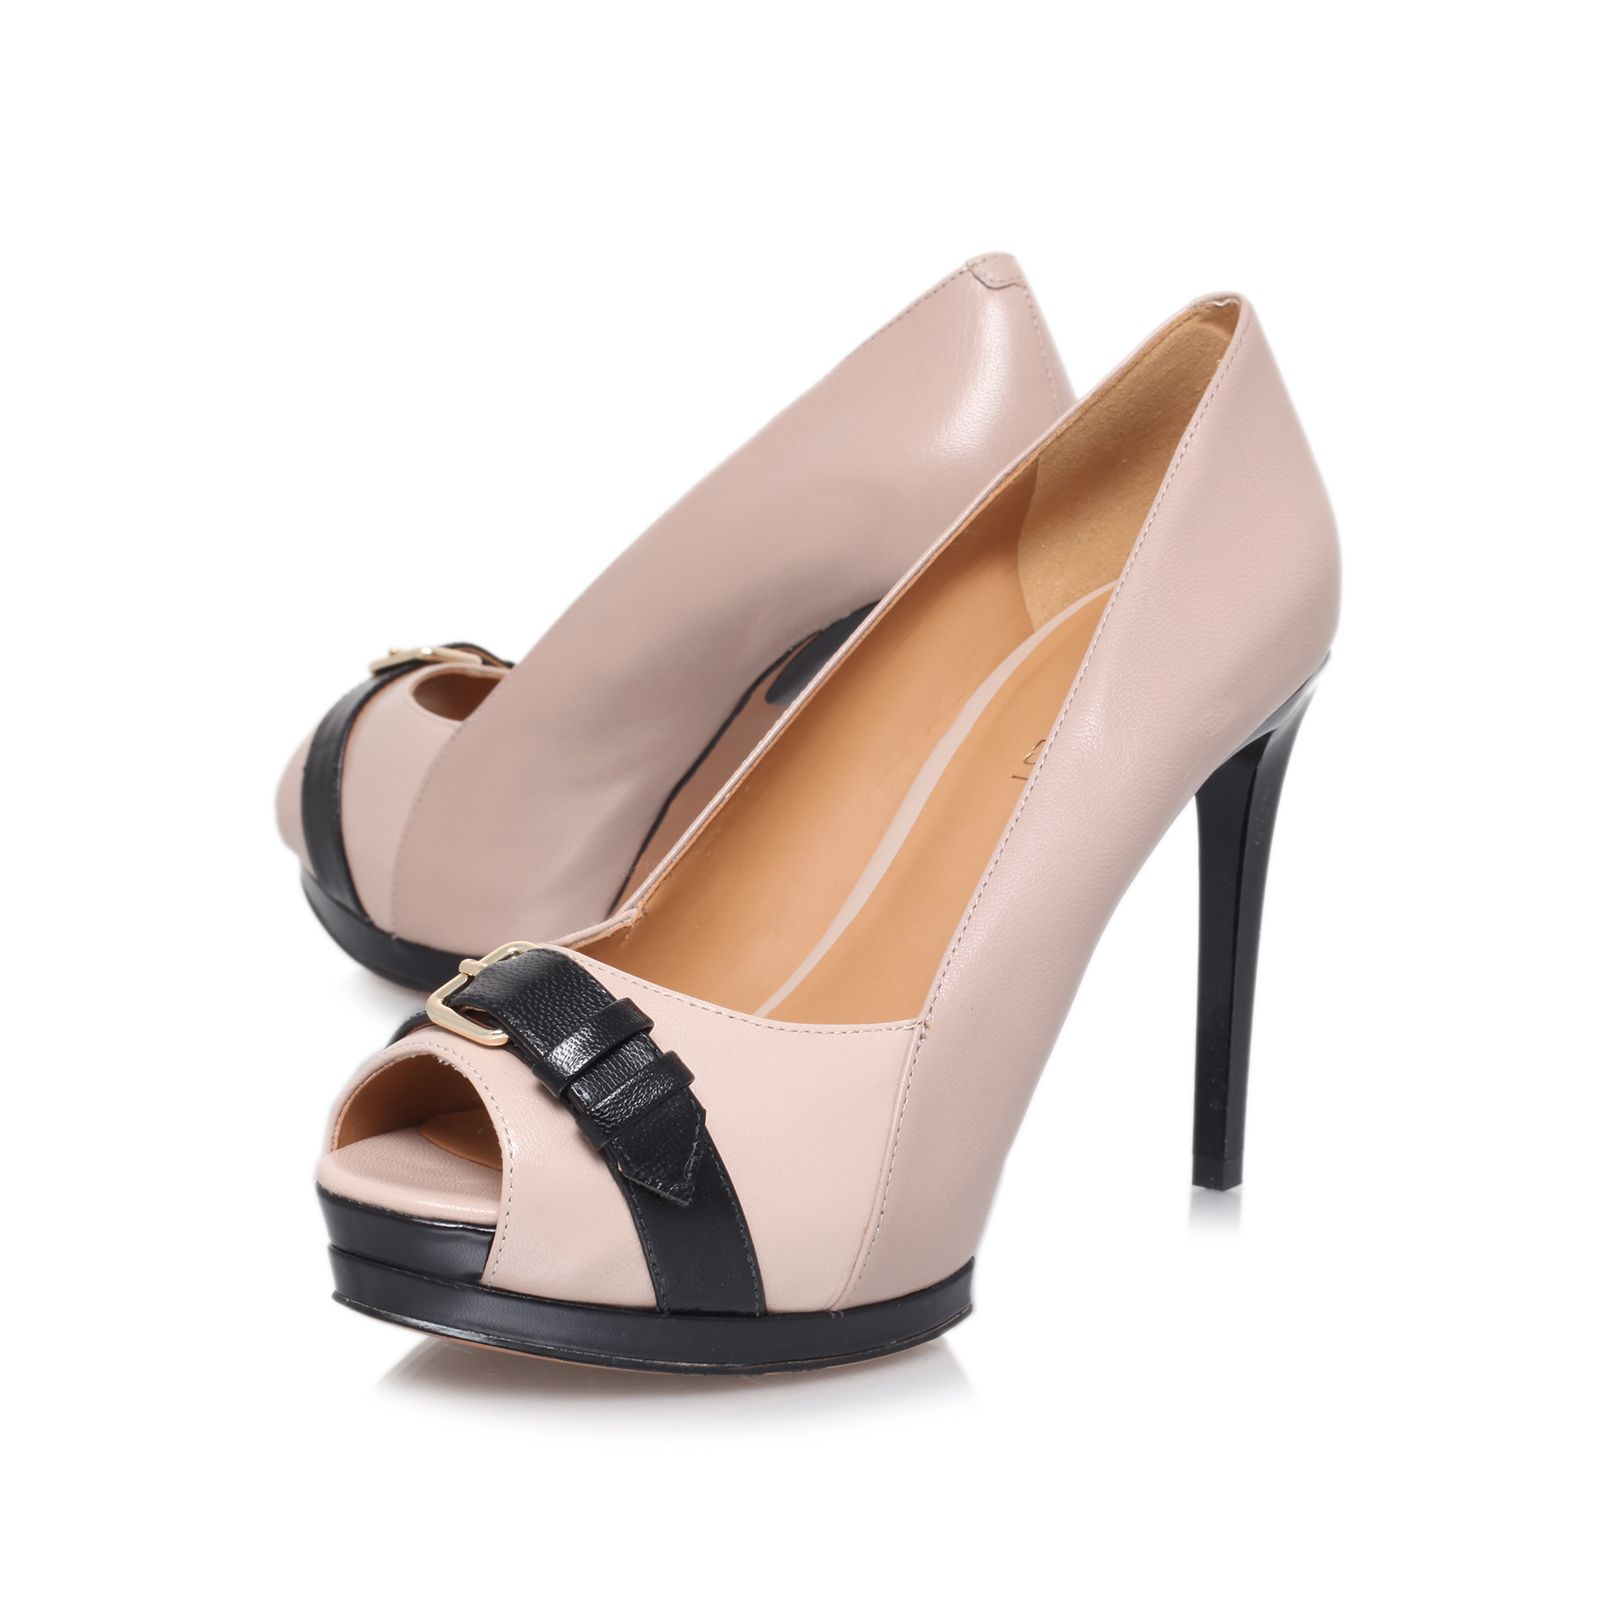 Diamonella high heeled court shoes